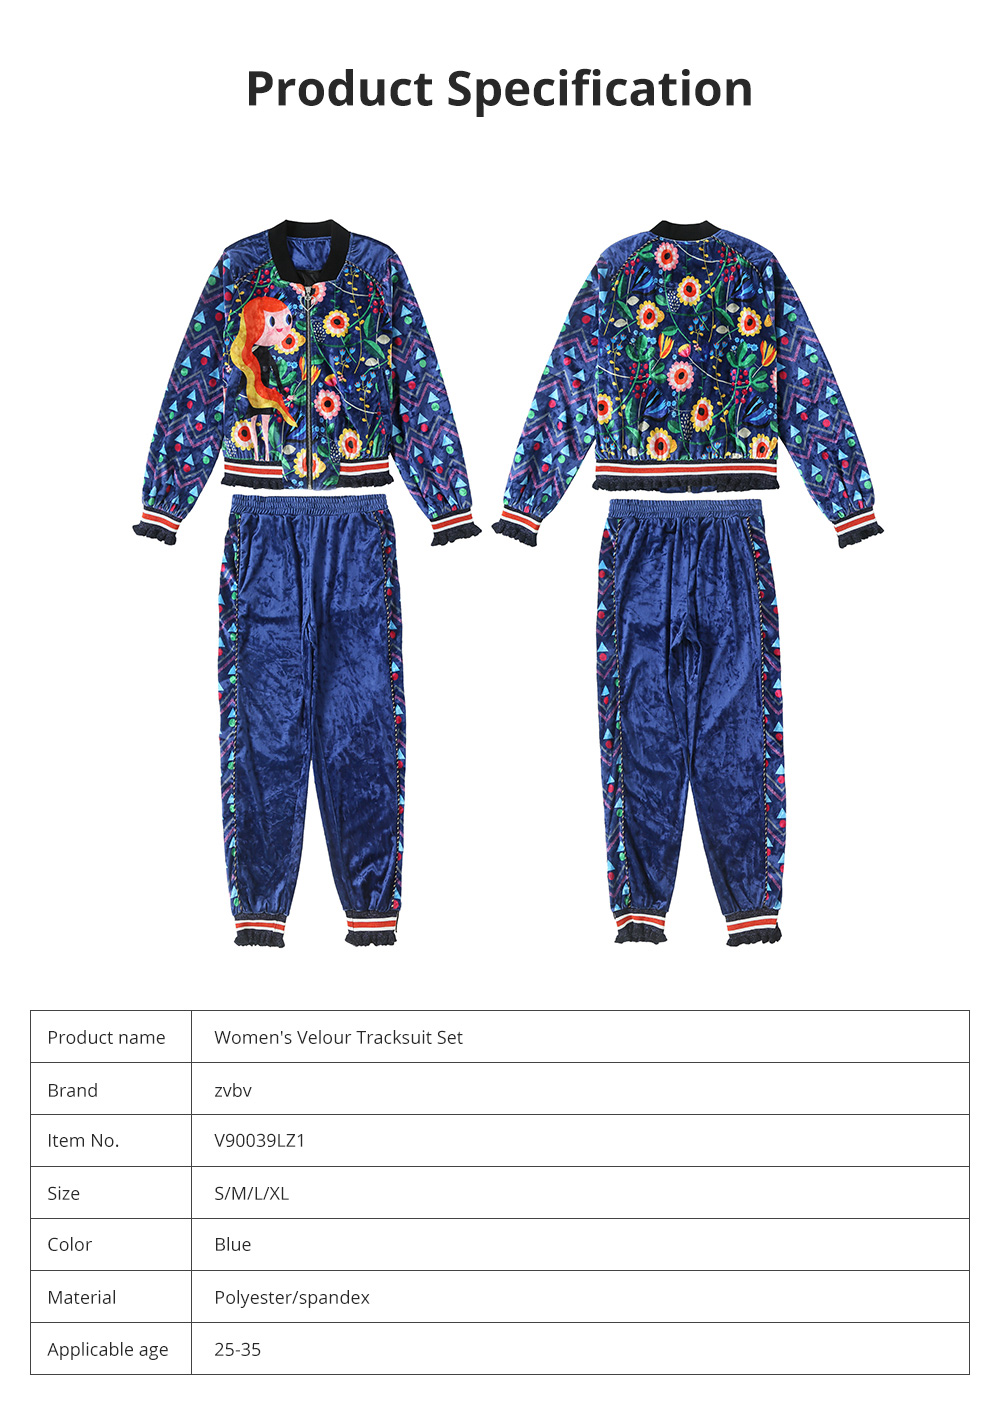 2020 Women's Velour Tracksuit Set with Long Sleeve Top Long Pants 2 Piece Sporty Velvet Suits with Printed Flowers 7